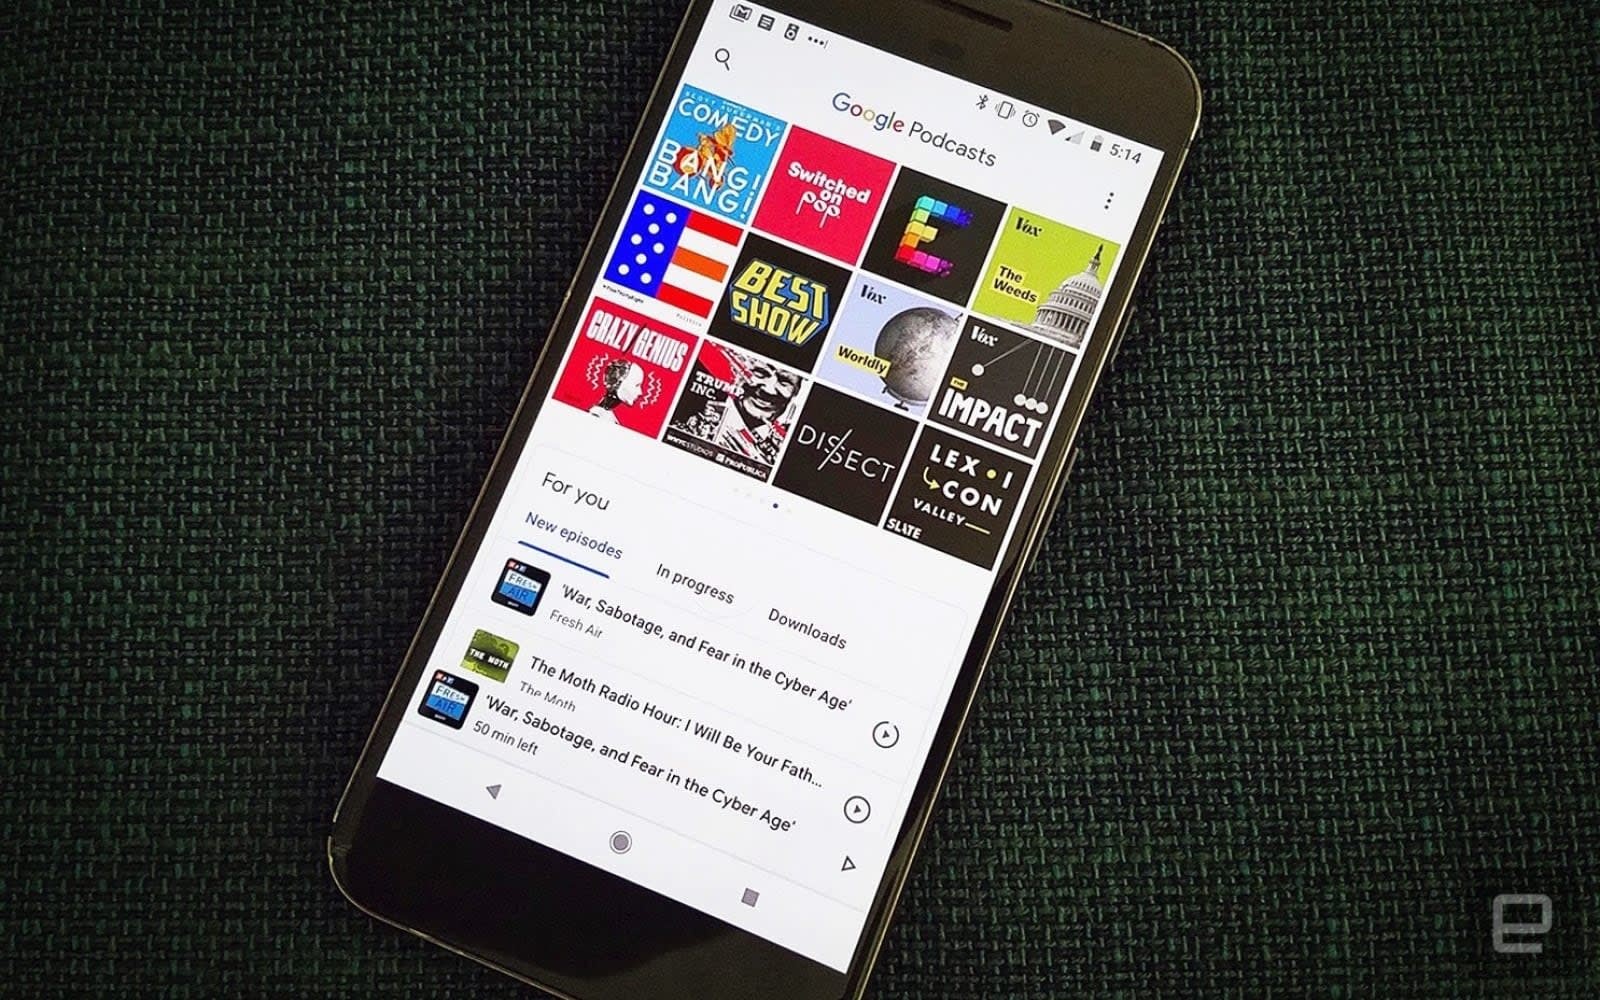 Google Podcasts gets a much-needed personalized recommendations tab